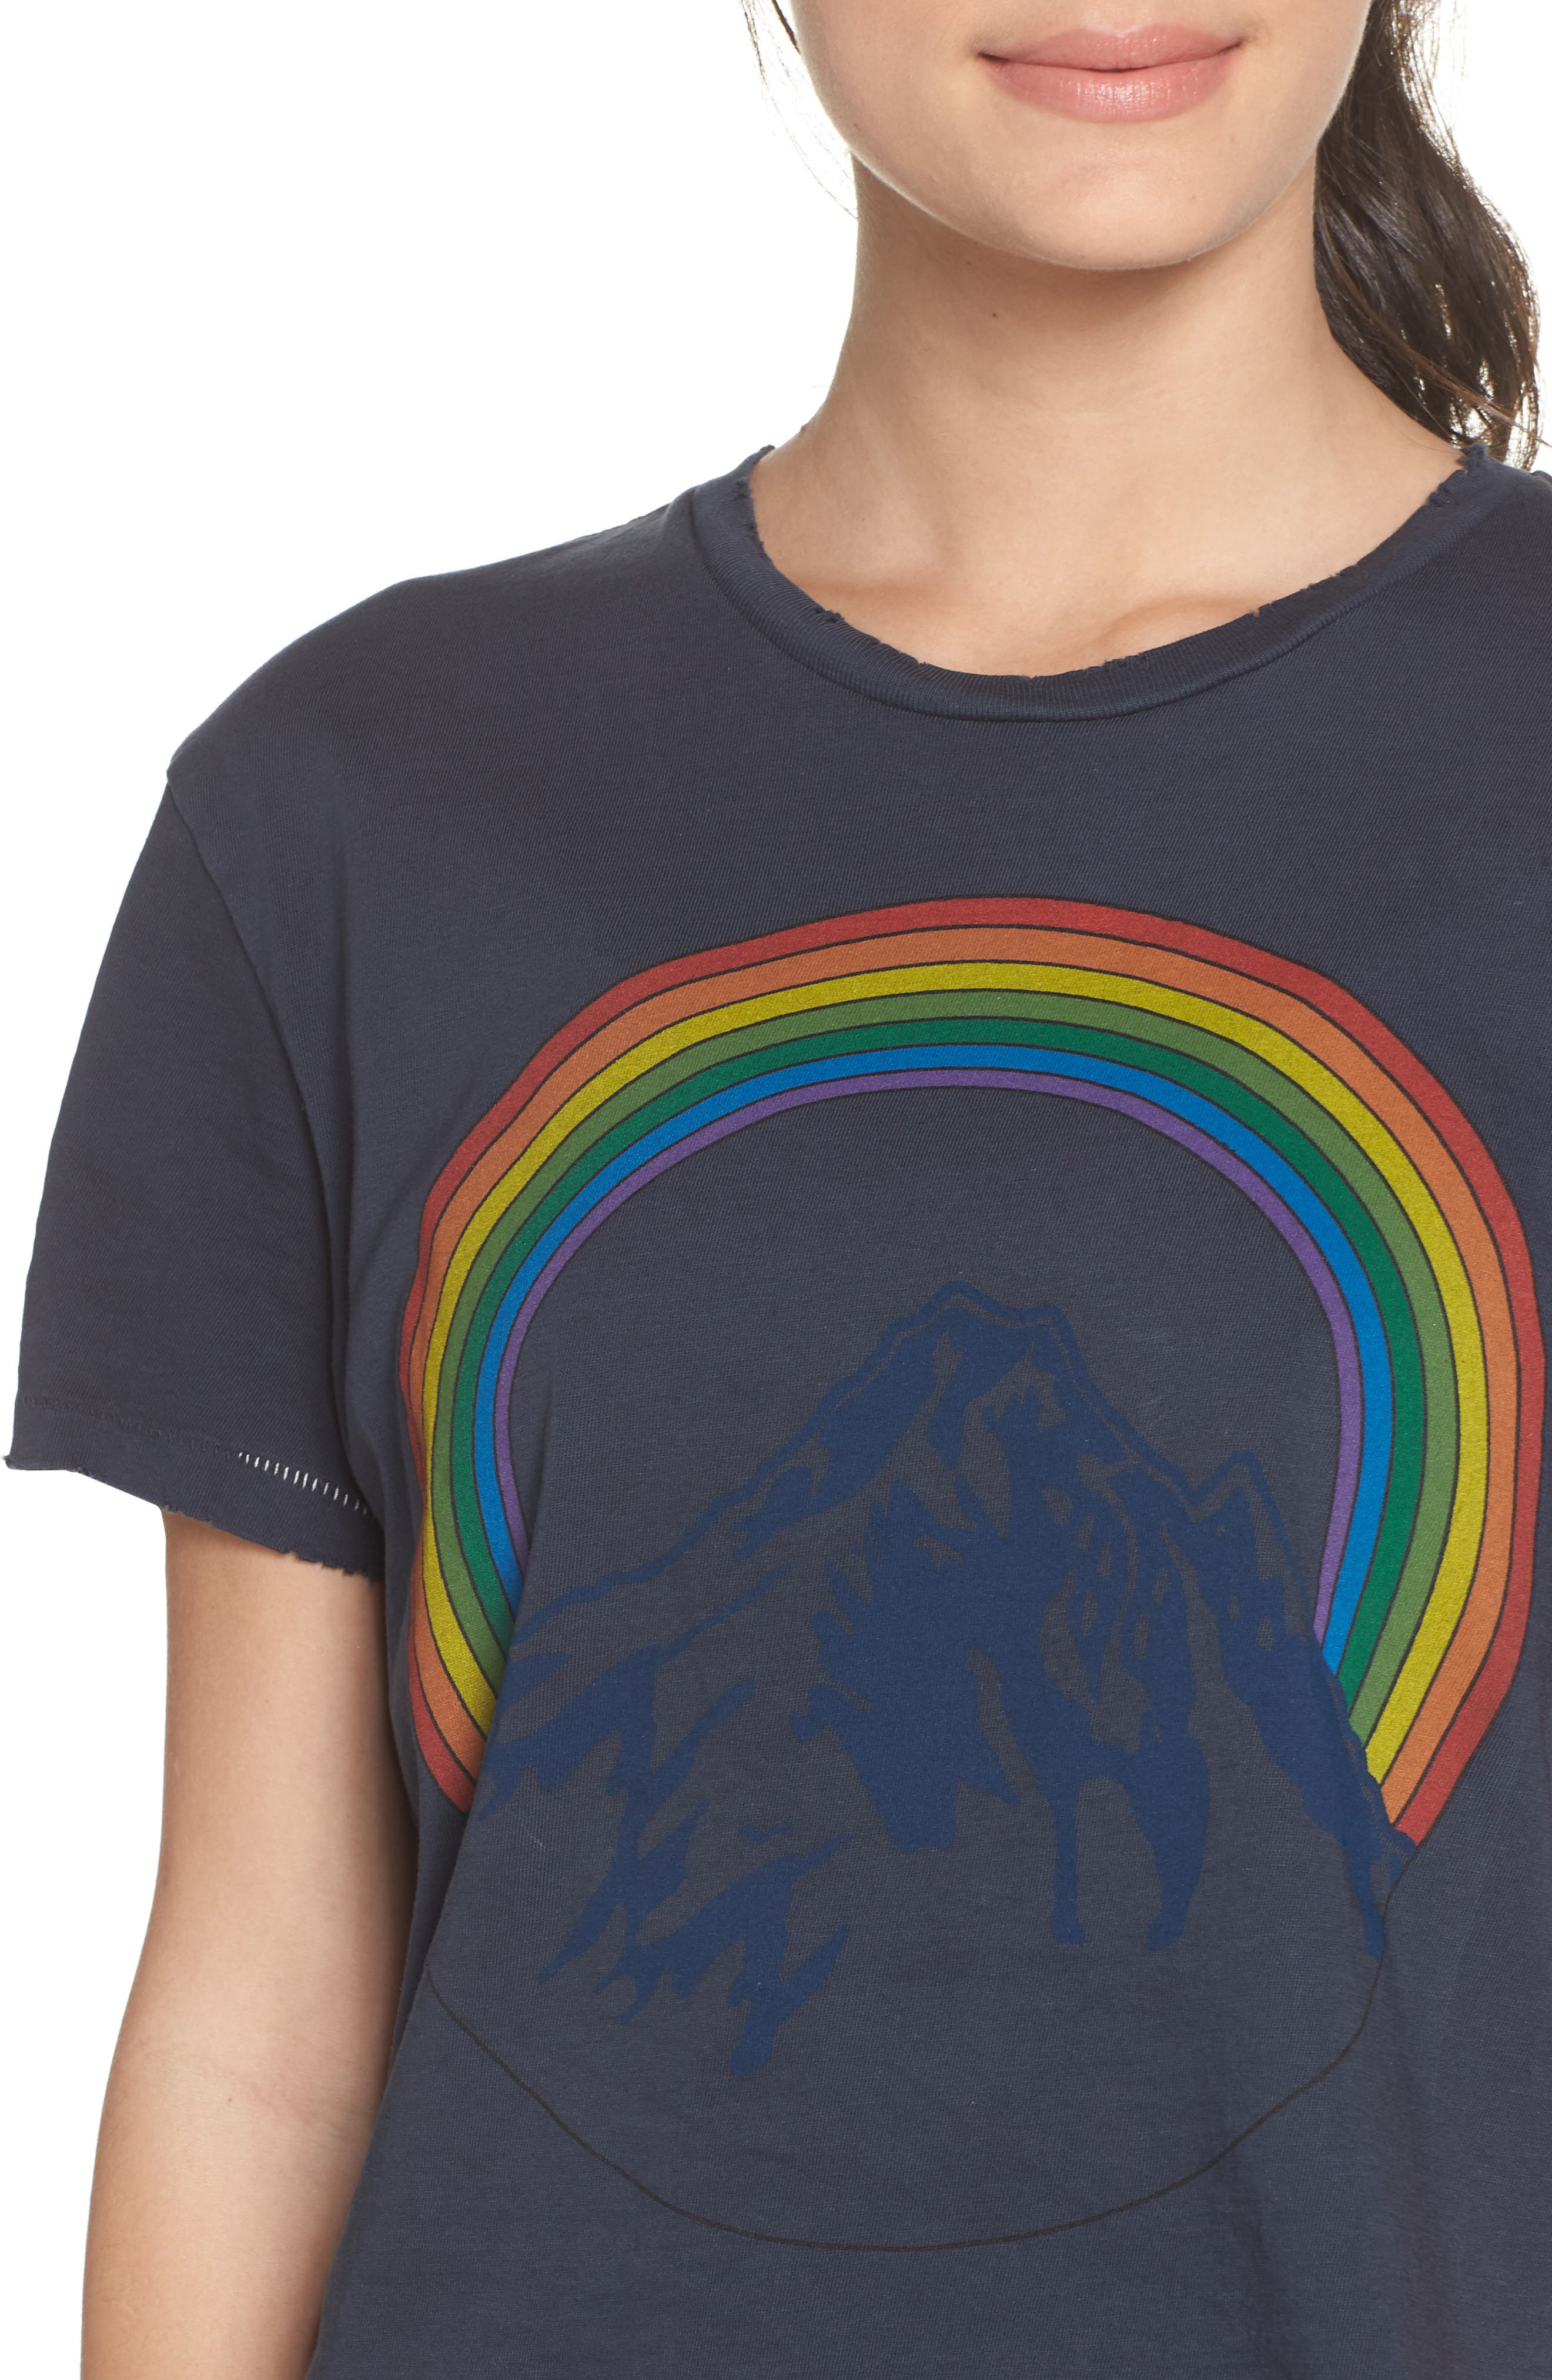 Mountain Rainbow Tee,                             Alternate thumbnail 4, color,                             CHARCOAL